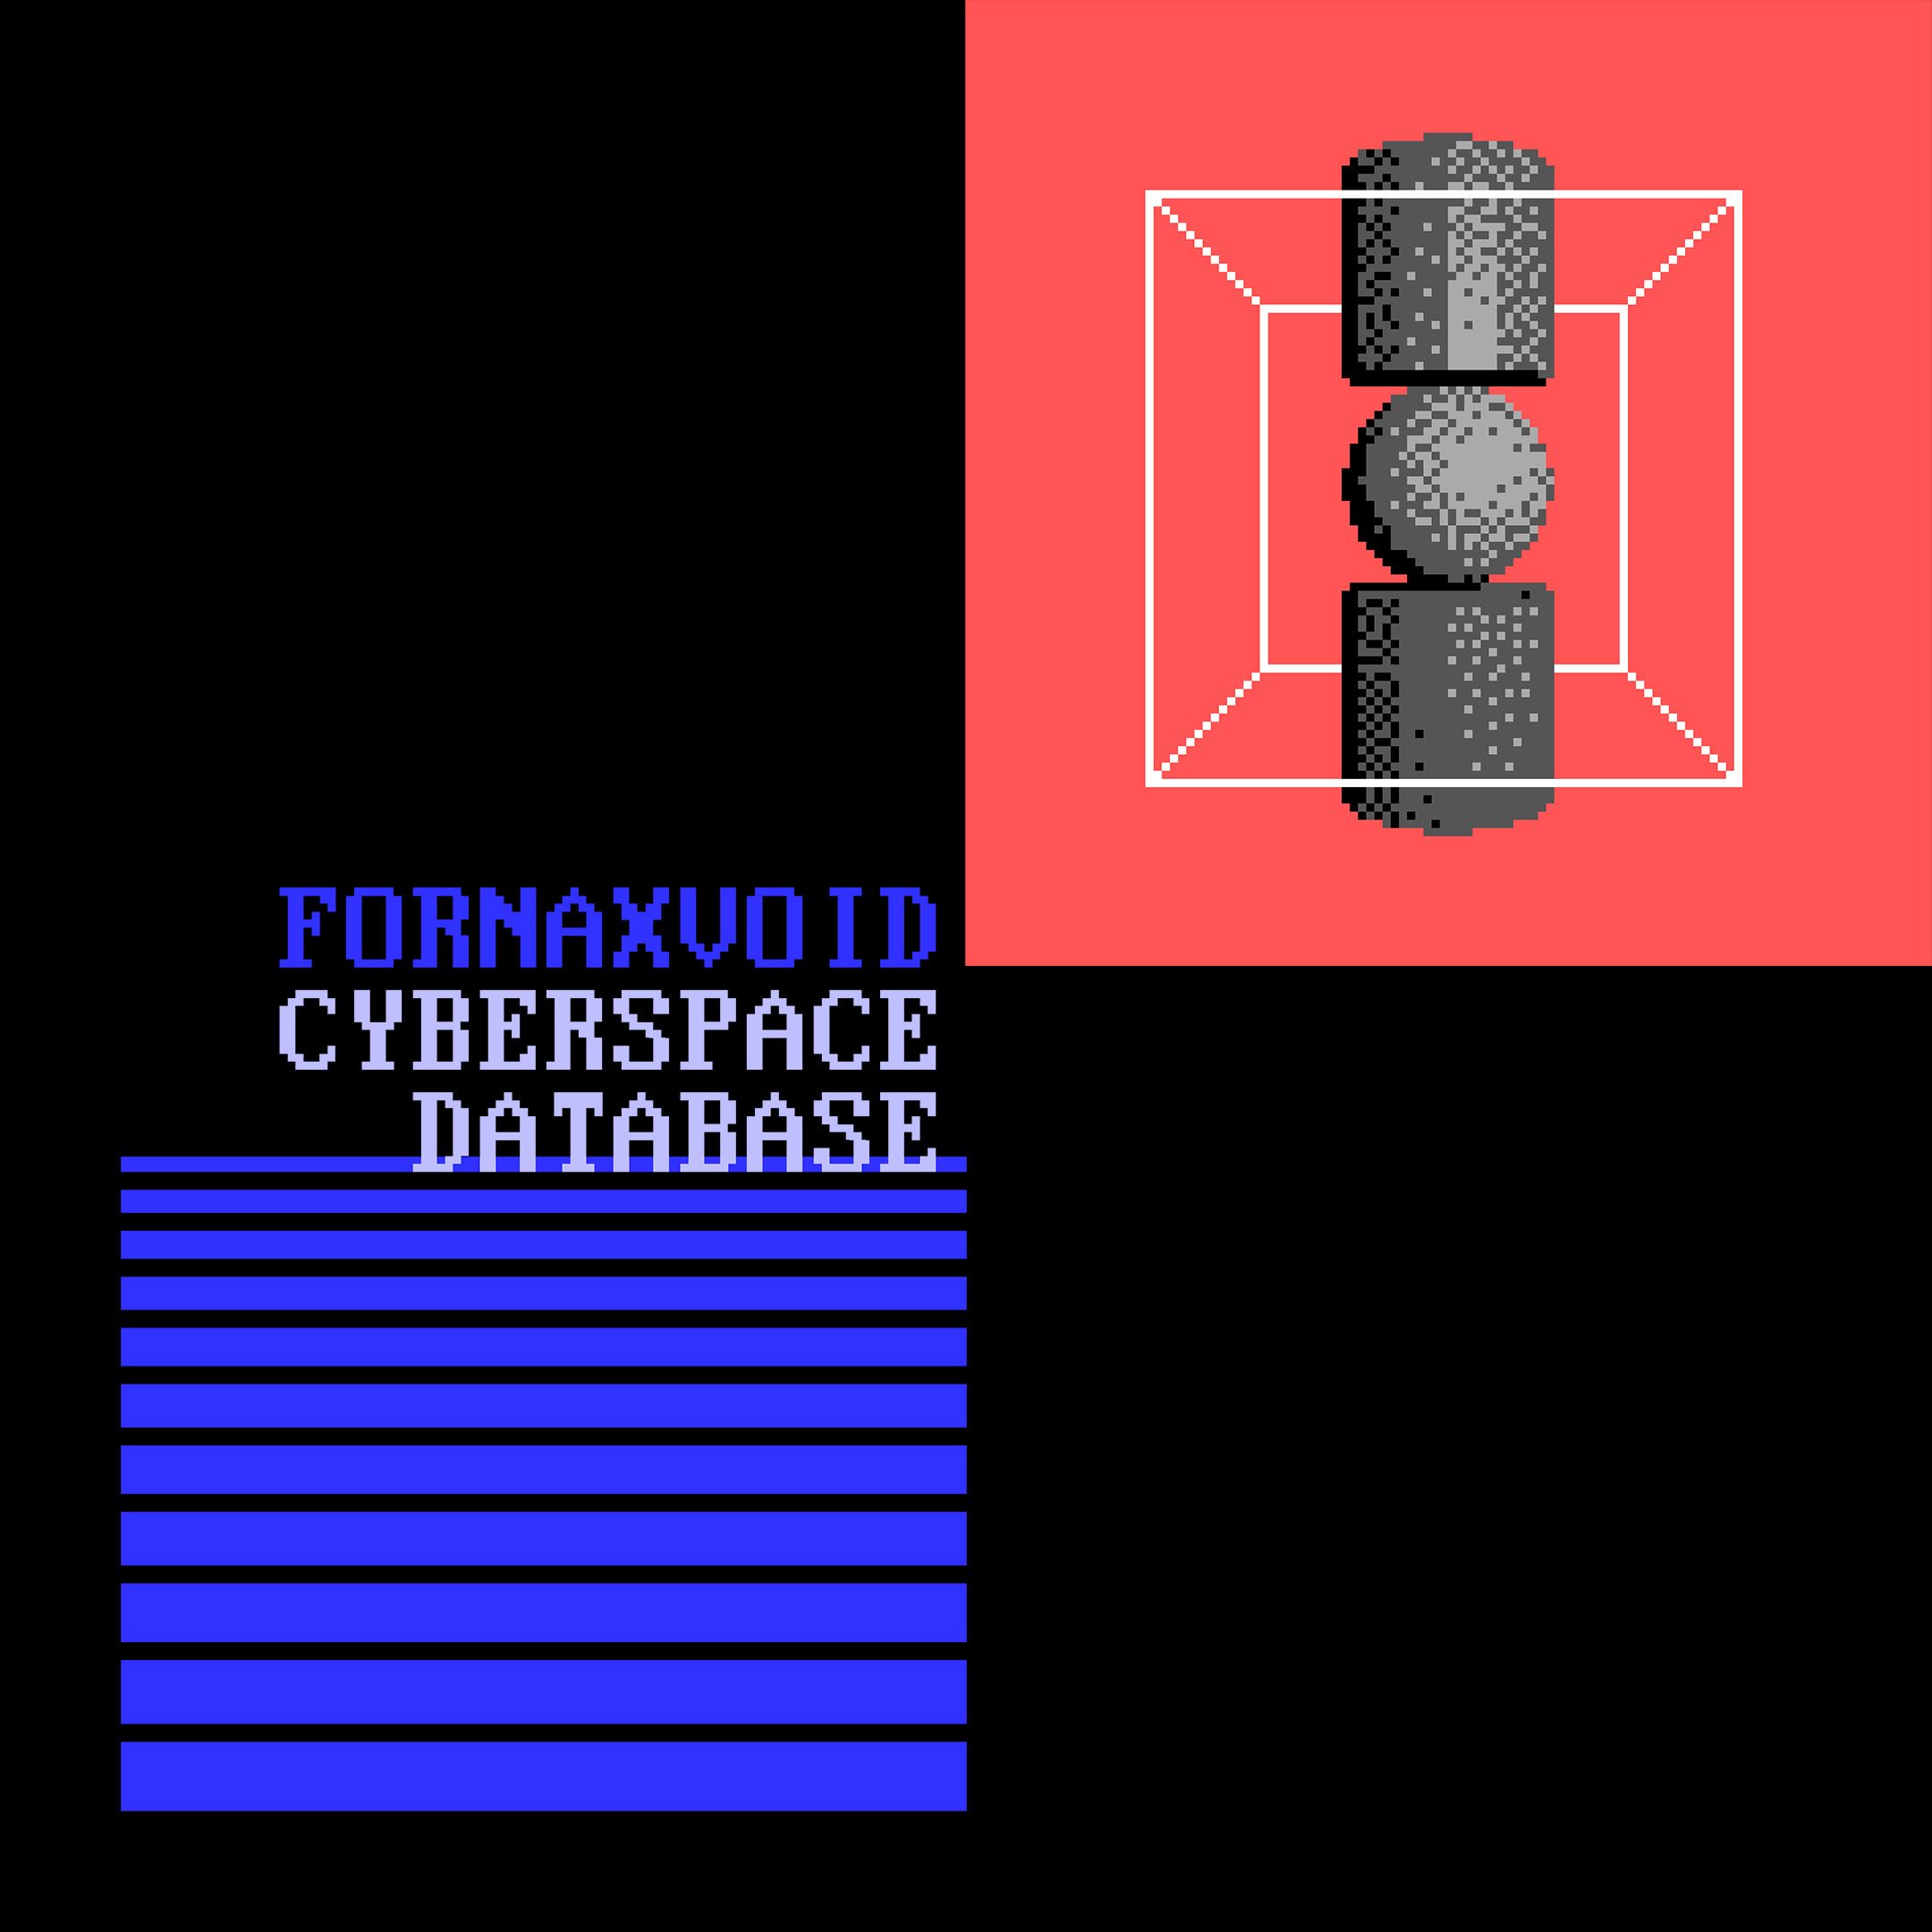 Cyberspace Database Cover Concept 2017-JAN-02